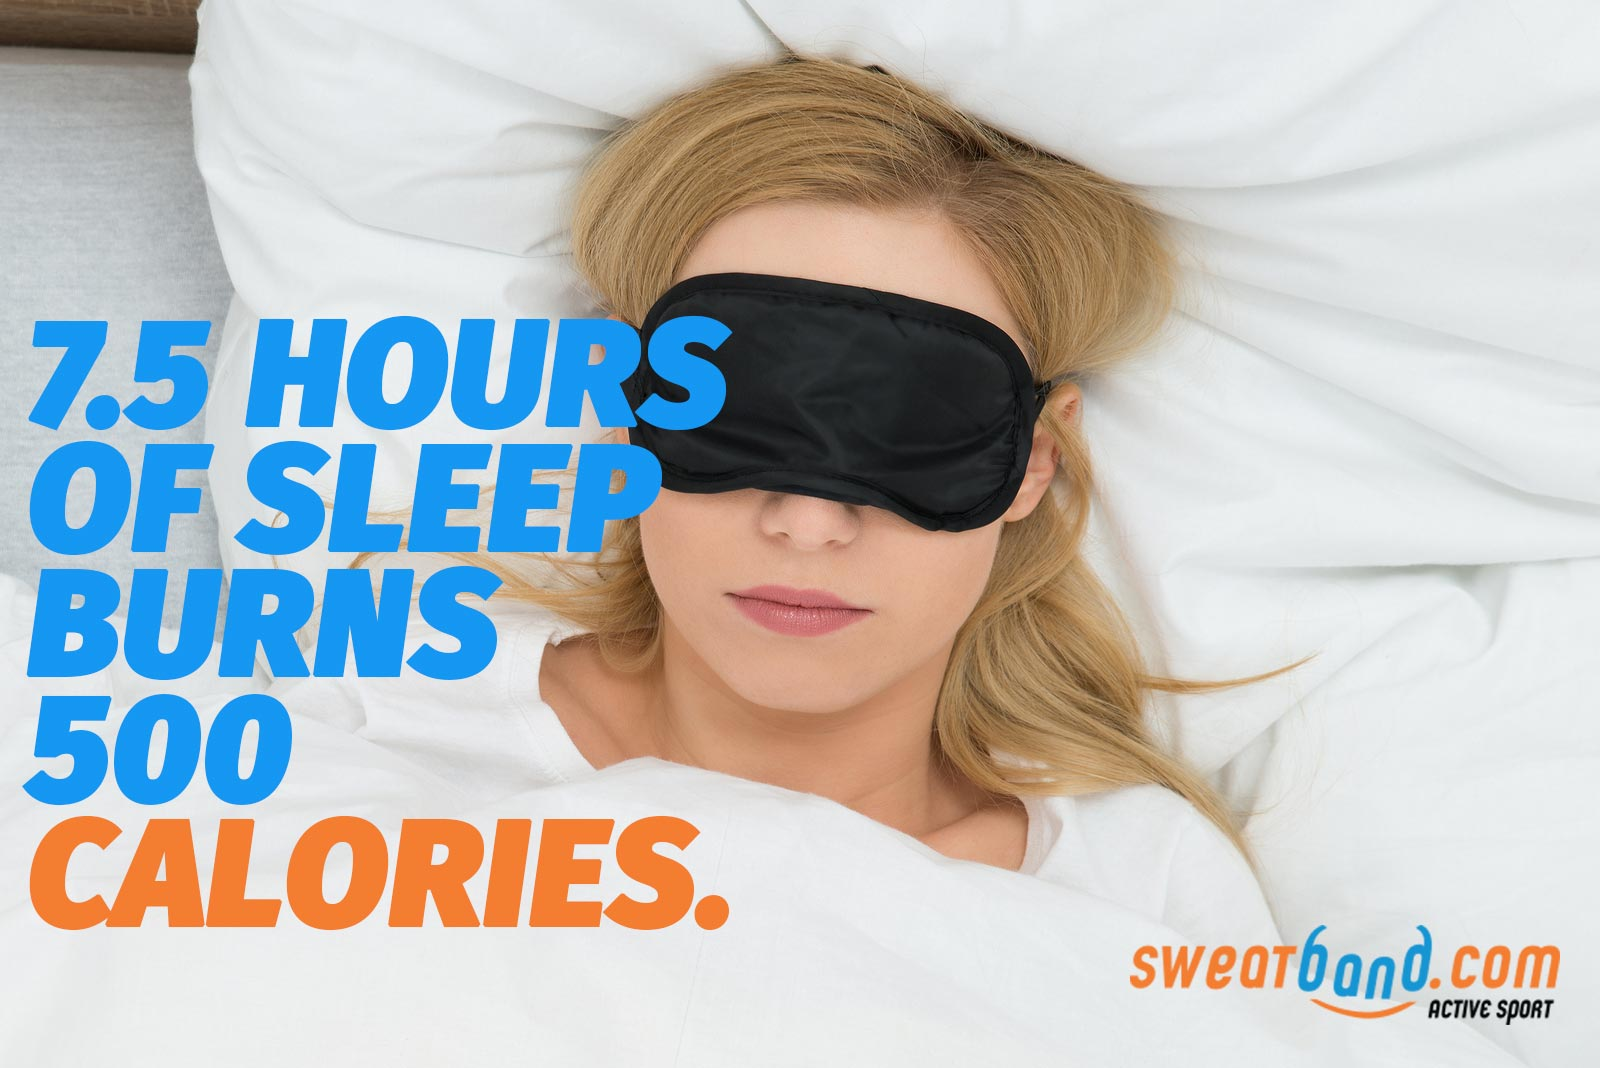 You might think sleeping is the opposite of working out, but actually your body burns around 500 calories during 7.5 hours of shut eye.